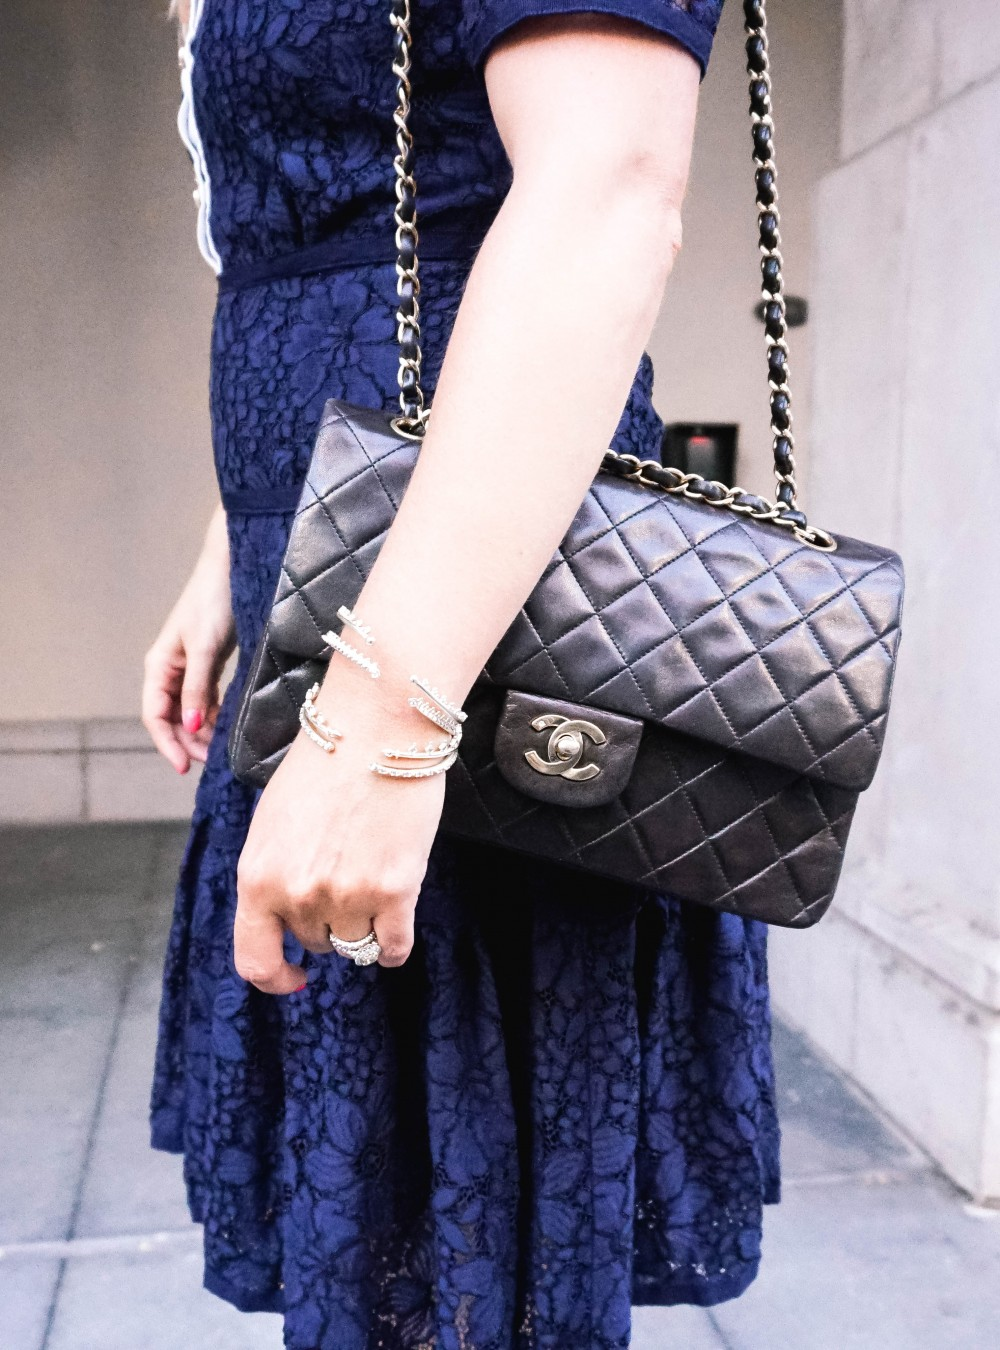 Navy Lace Dress-Draper James-Outfit Inspiration-Santana Row-Draper James Dress-Have Need Want 4